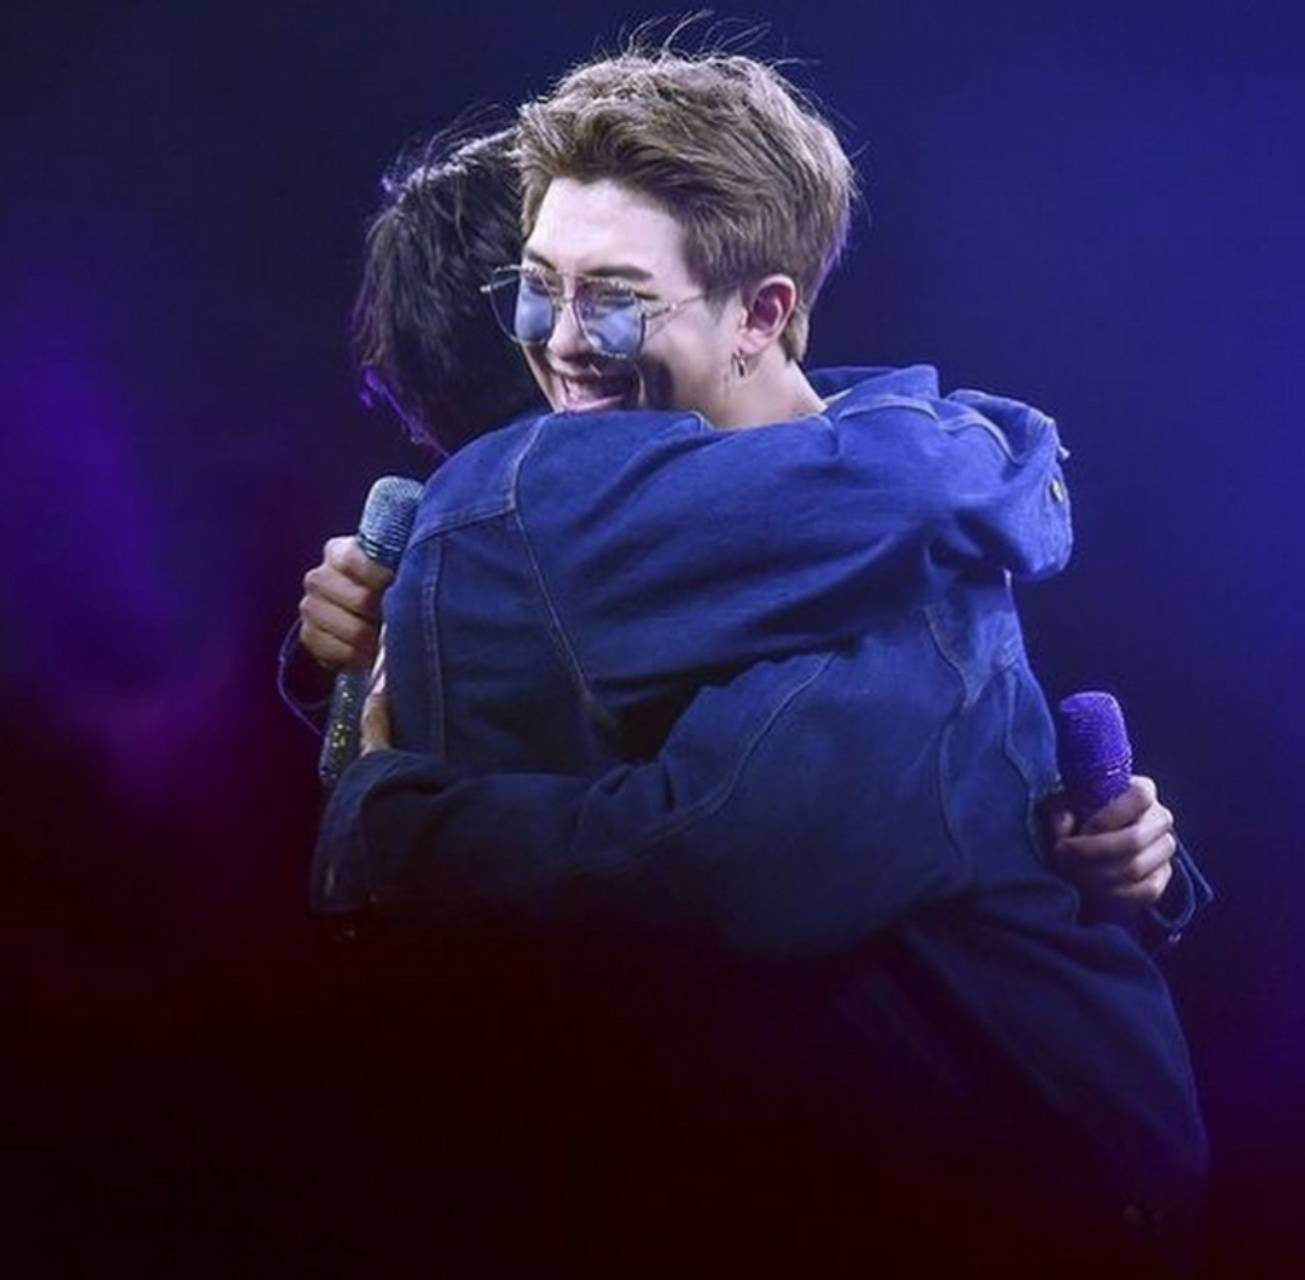 Rm and jk